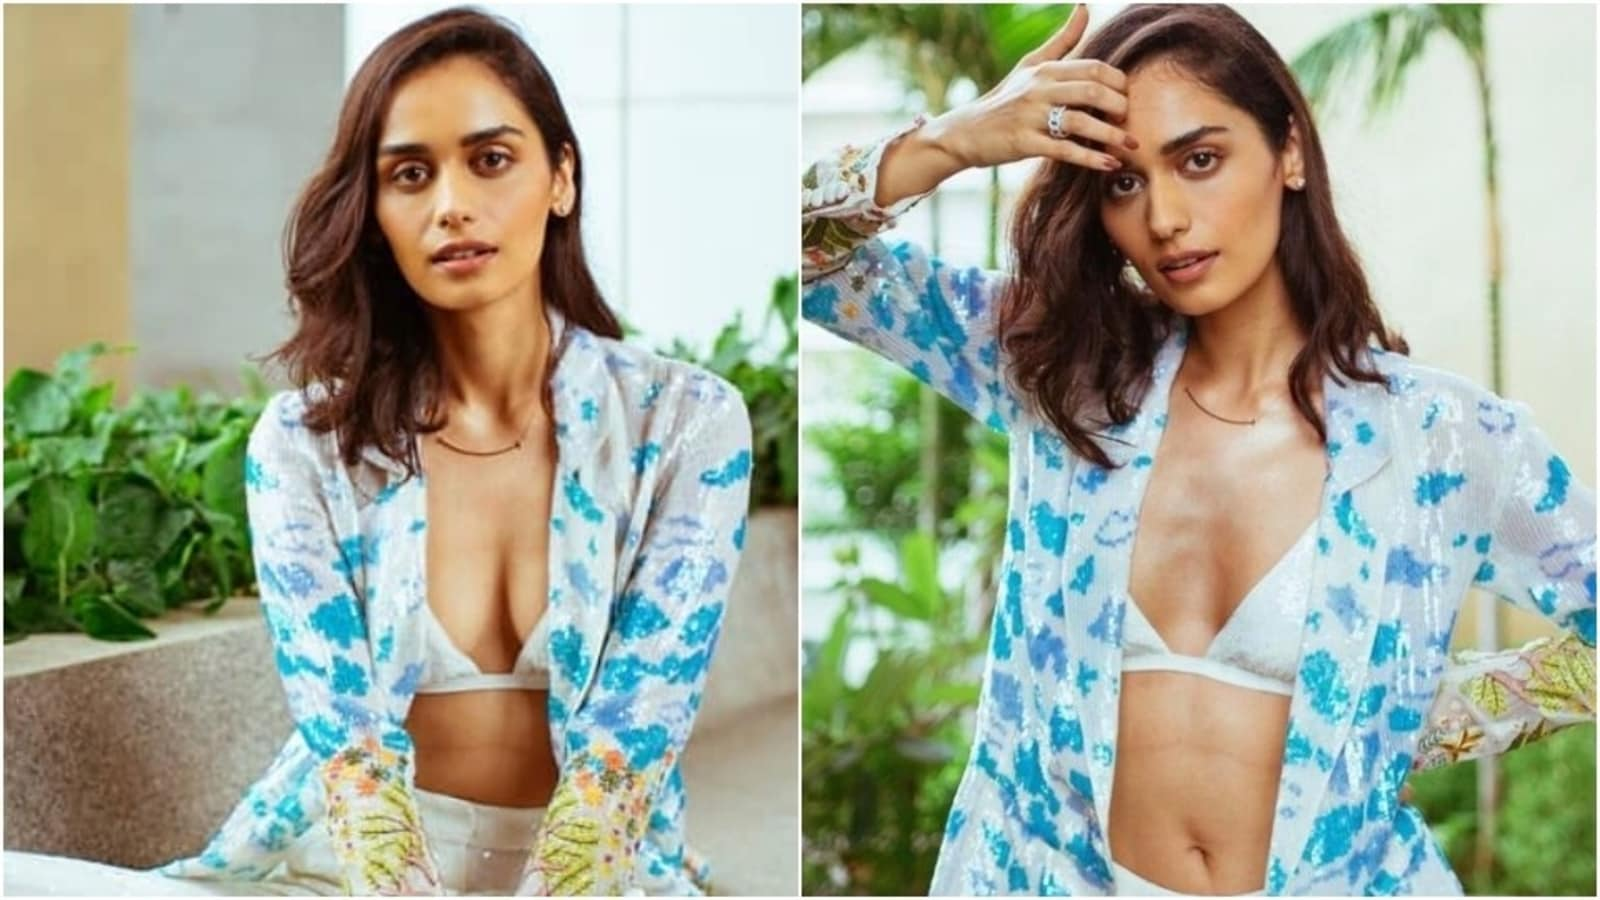 Manushi Chhillar aces the recent summer time look in bralette and pants with vibrant shrug